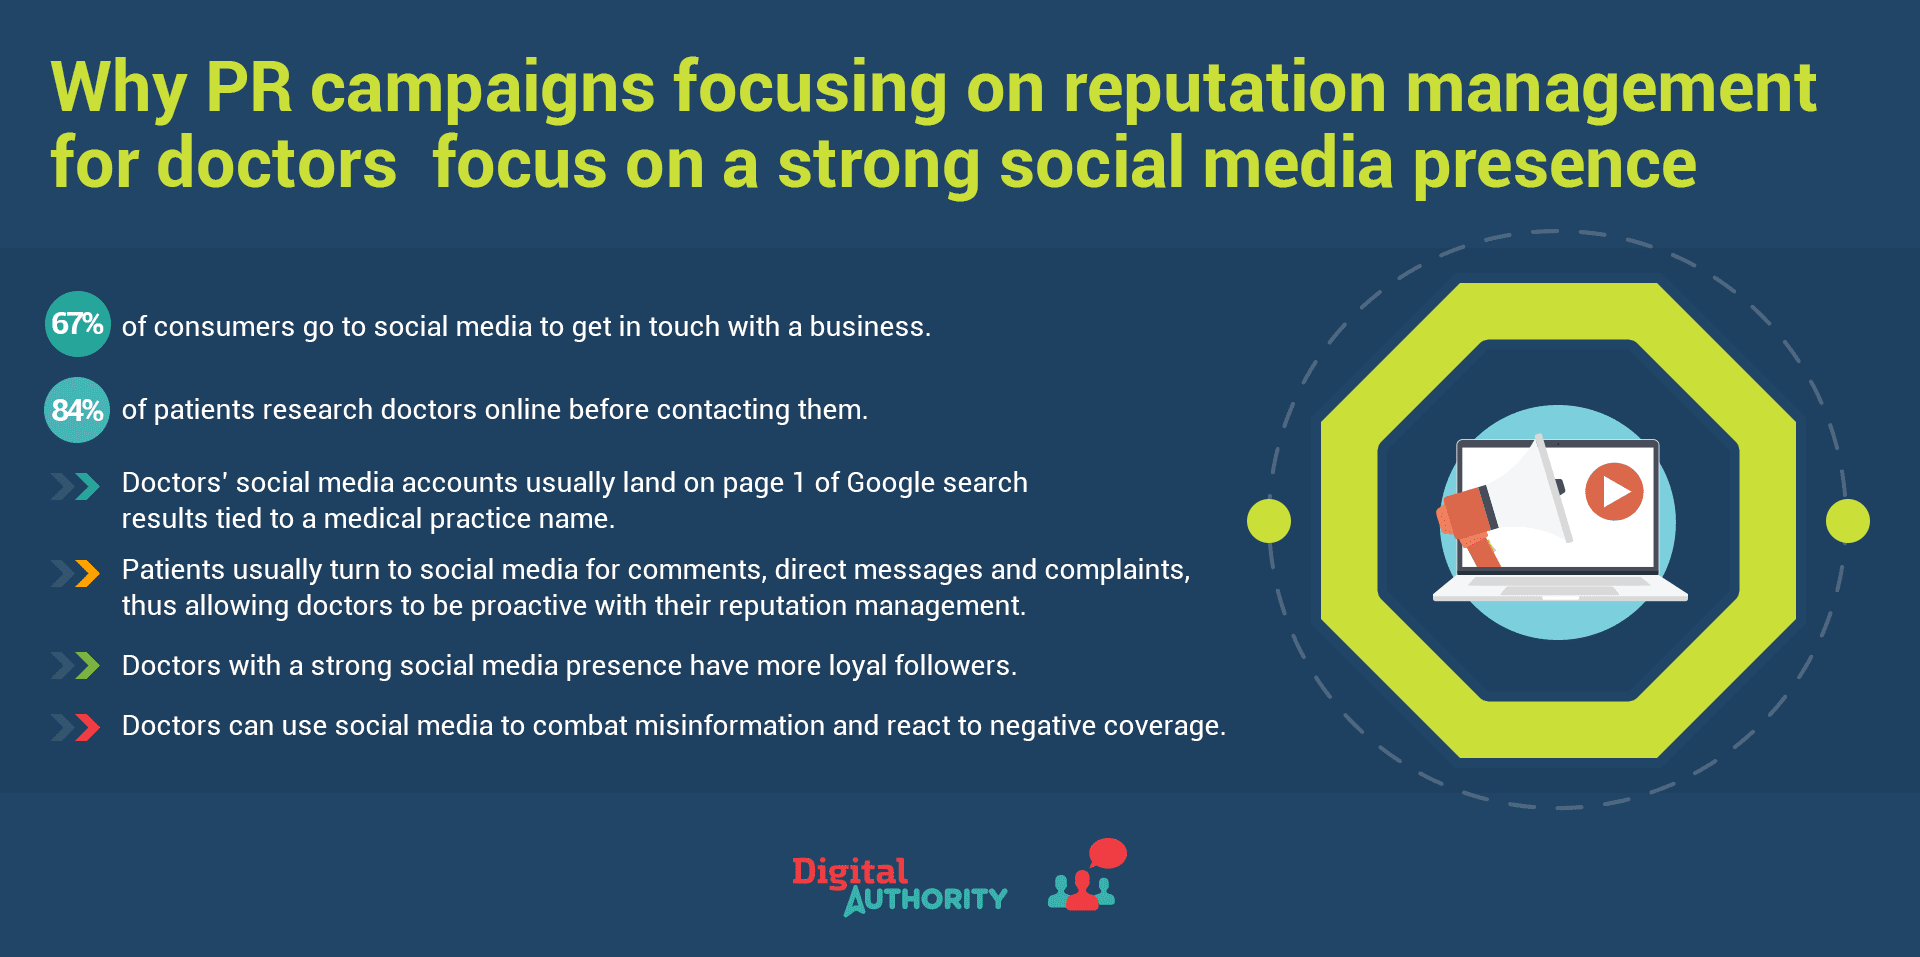 Graphic explaining why PR campaigns focusing on reputation management for doctors focus on strong social media presence